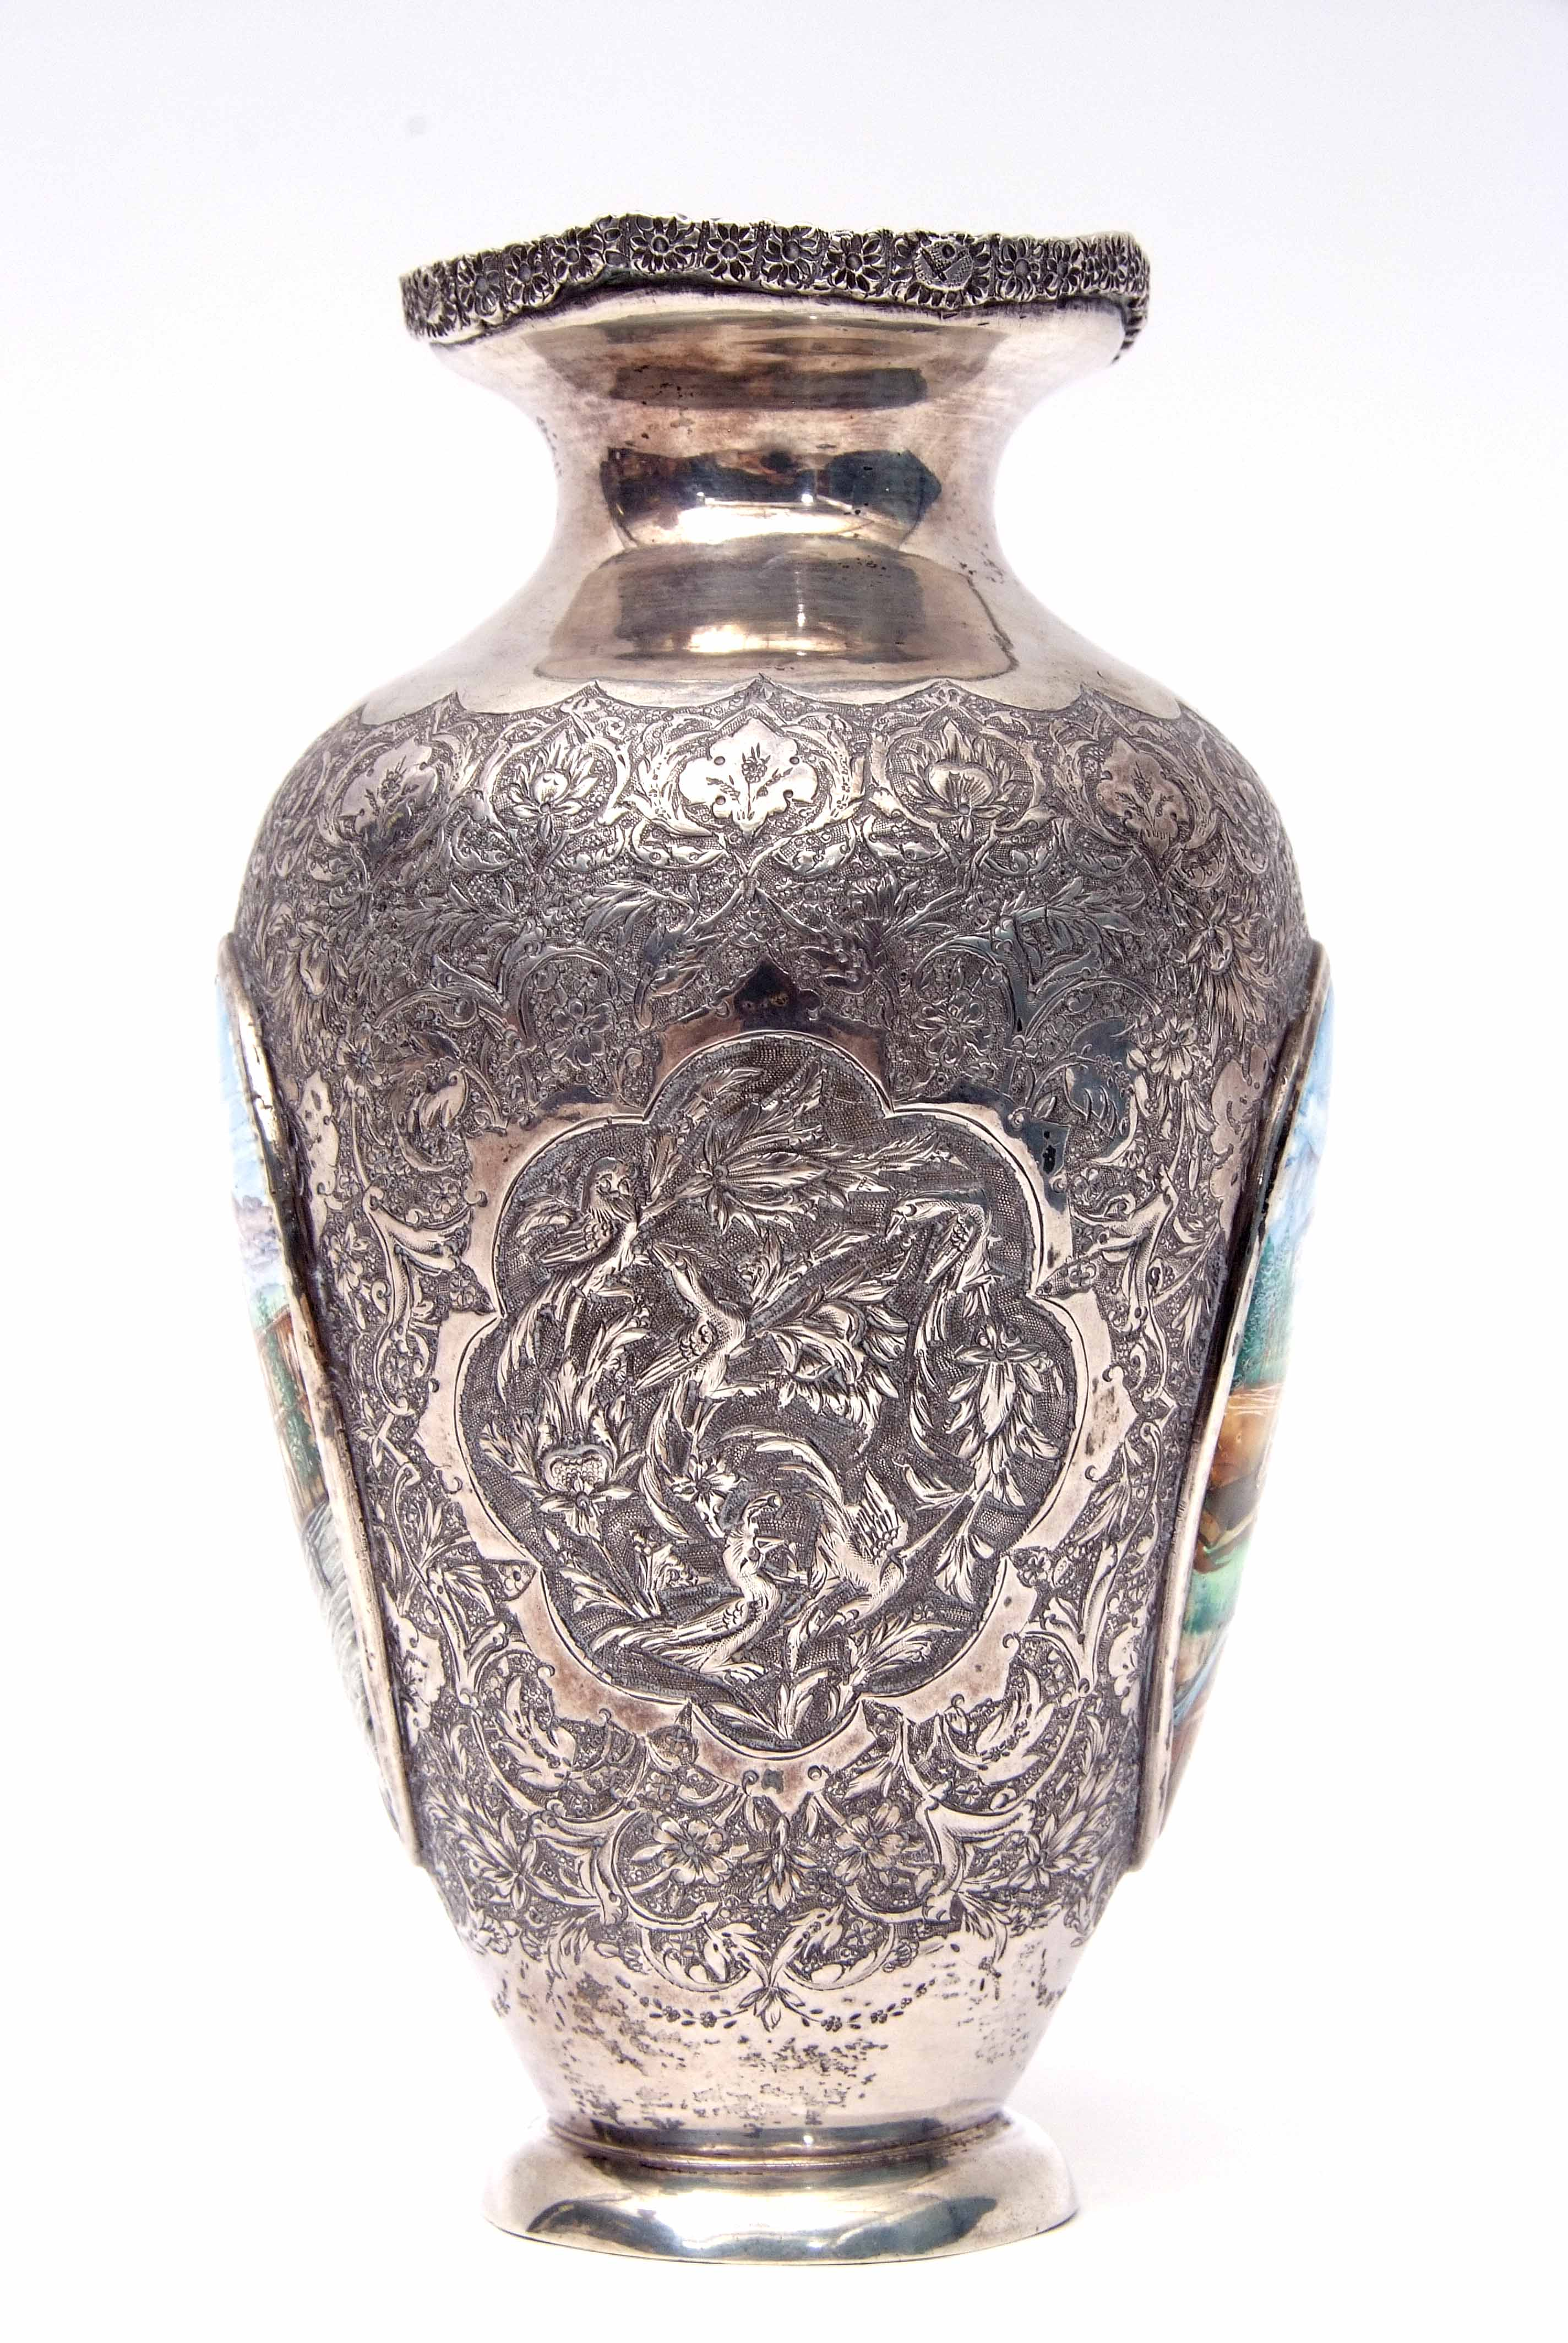 Lot 413 - An interesting Russian white metal vase, heavily chased with bird and foliate designs and also